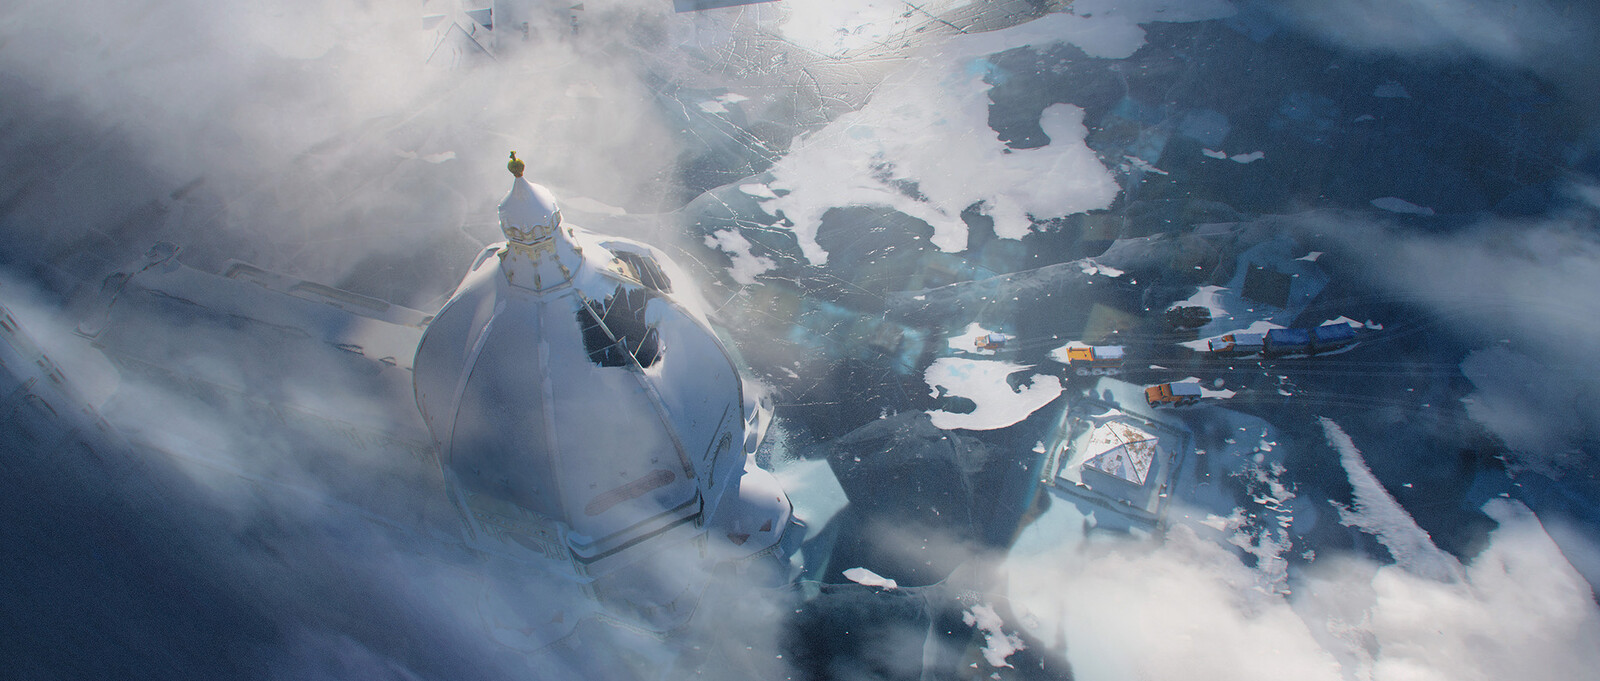 The Cathedral of Ice